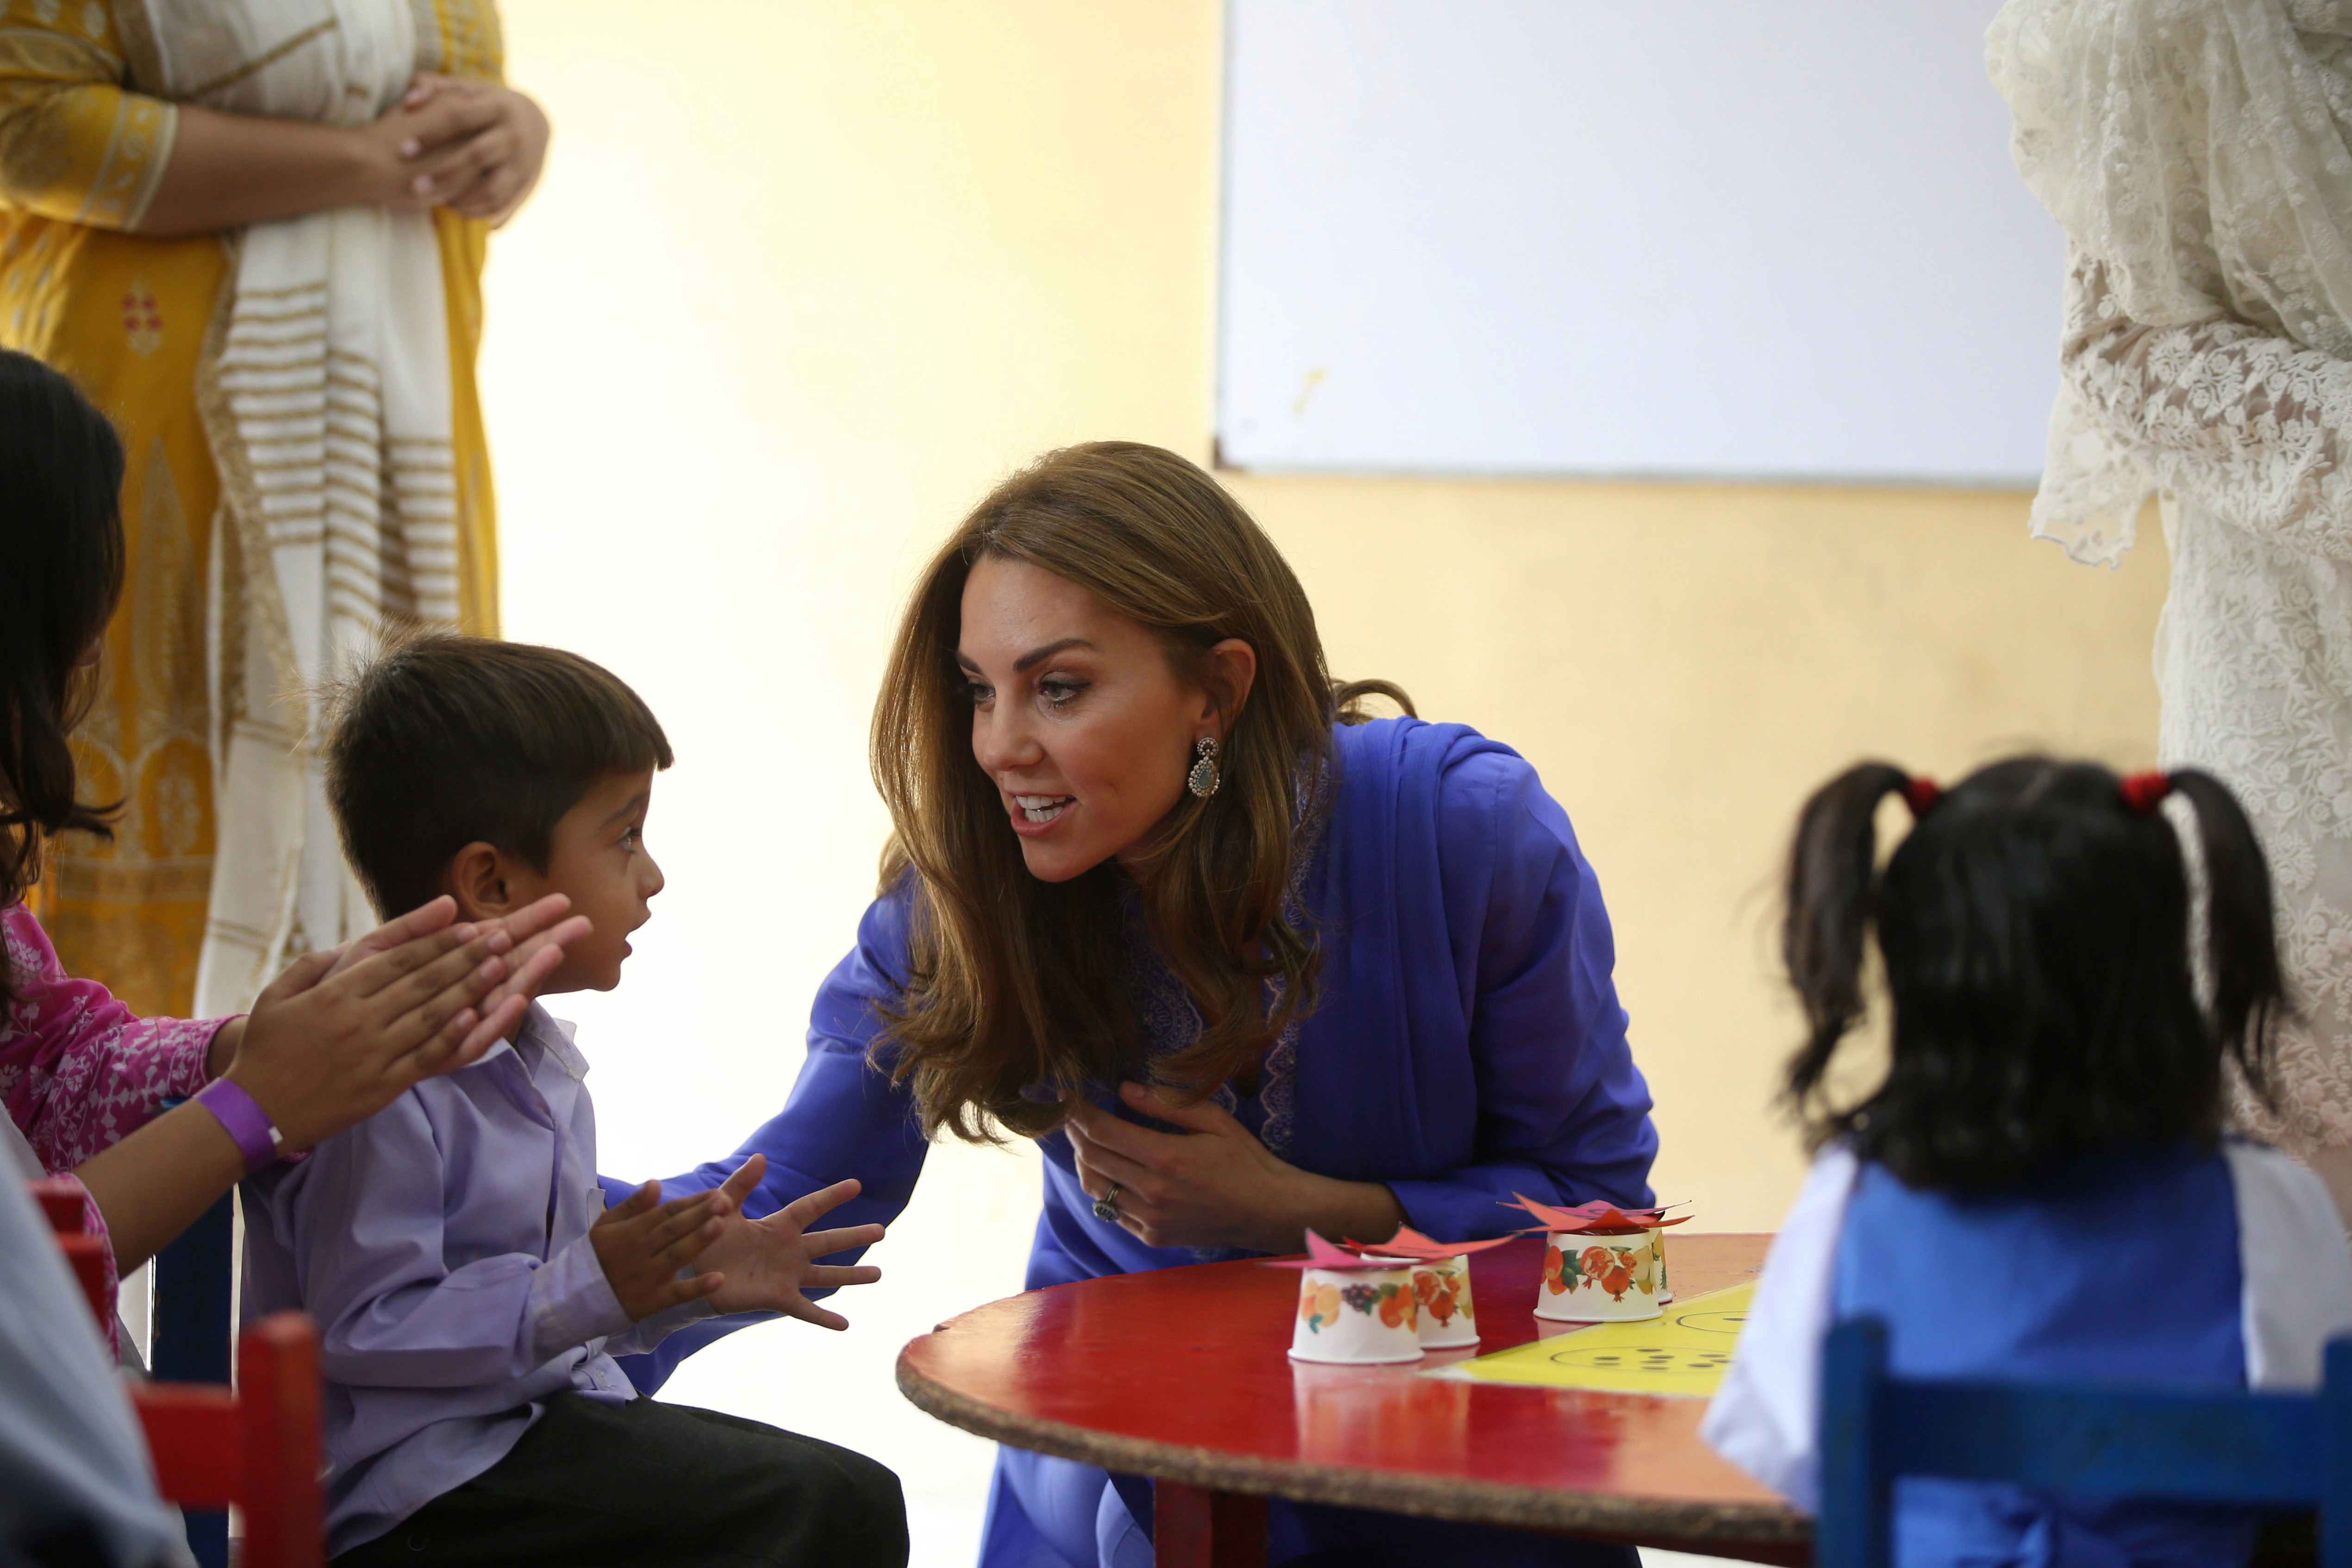 Kate speaks today to one little boy during the visit to Pakistan, which the royals have made without their own three children